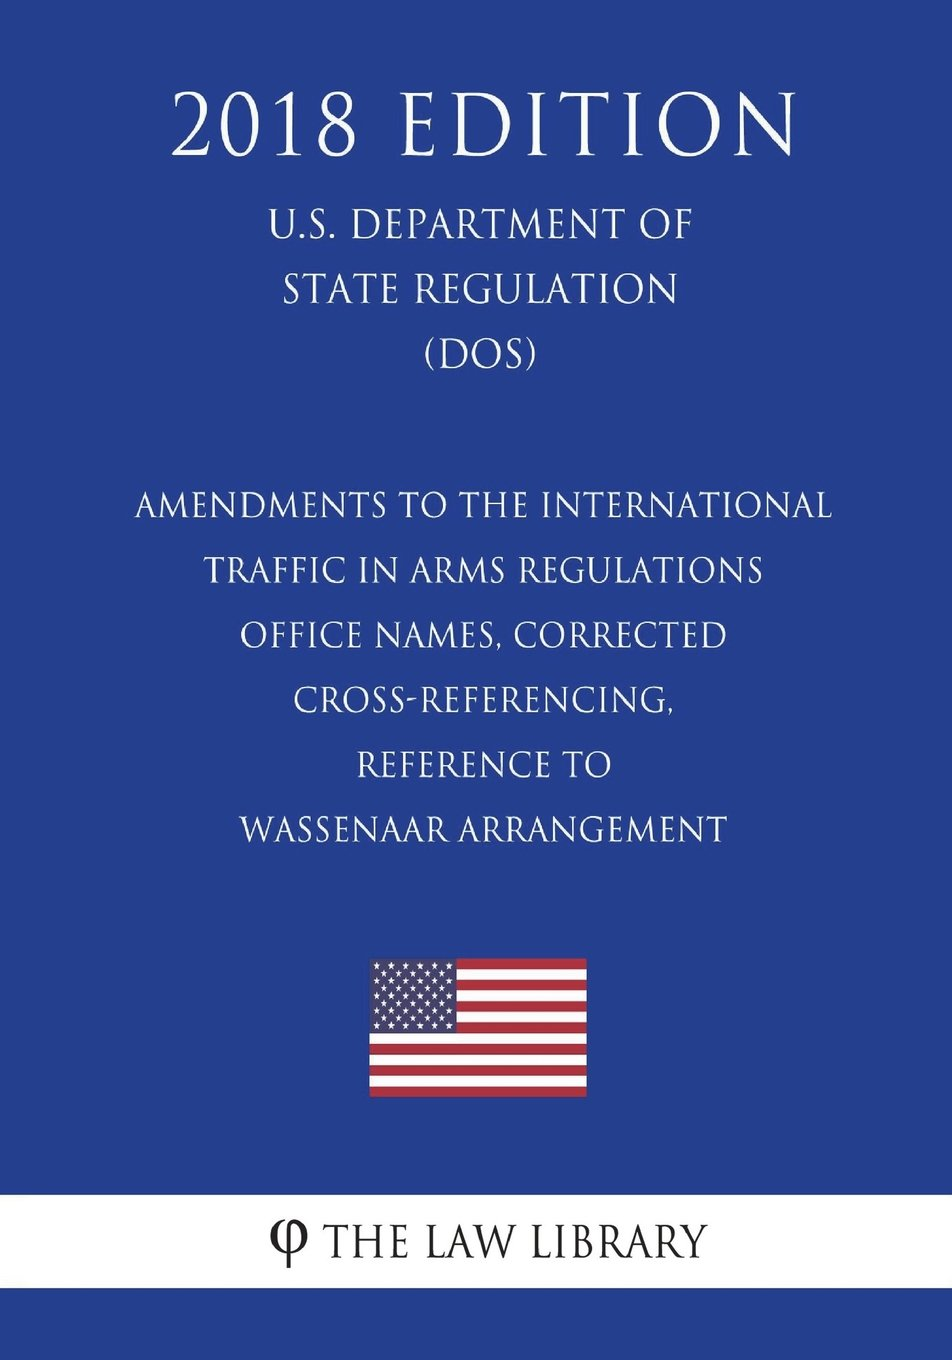 Amendments to the International Traffic in Arms Regulations - Office Names, Corrected Cross-Referencing, Reference to Wassenaar Arrangement (U.S. Department of State Regulation) (DOS) (2018 Edition) pdf